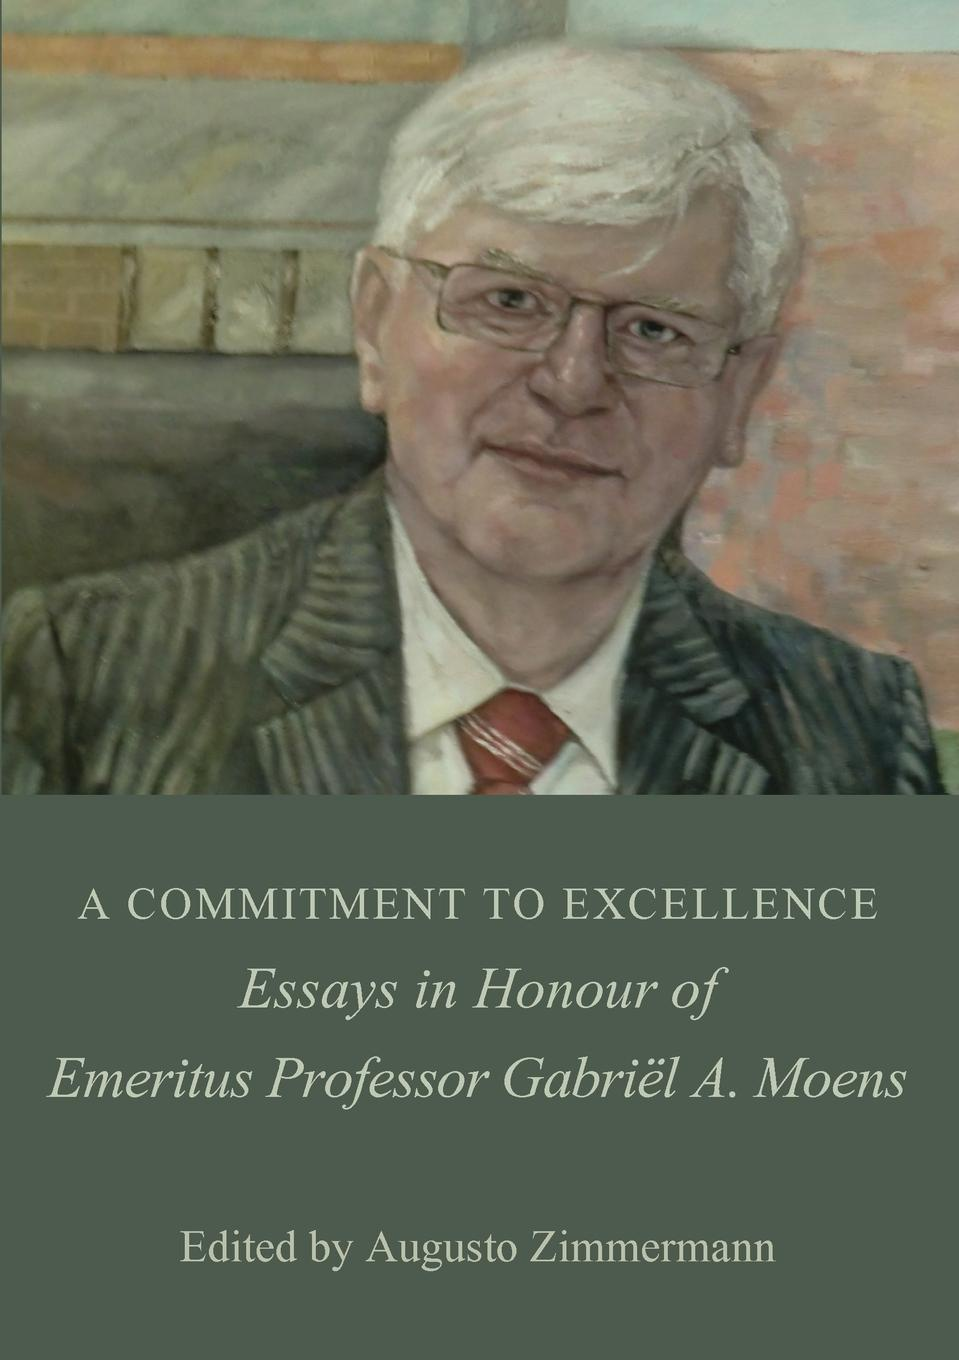 A COMMITMENT TO EXCELLENCE. Essays in Honour of Emeritus Professor Gabriel A. Moens nicholas sunday constitutional law constitutionalism and democracy